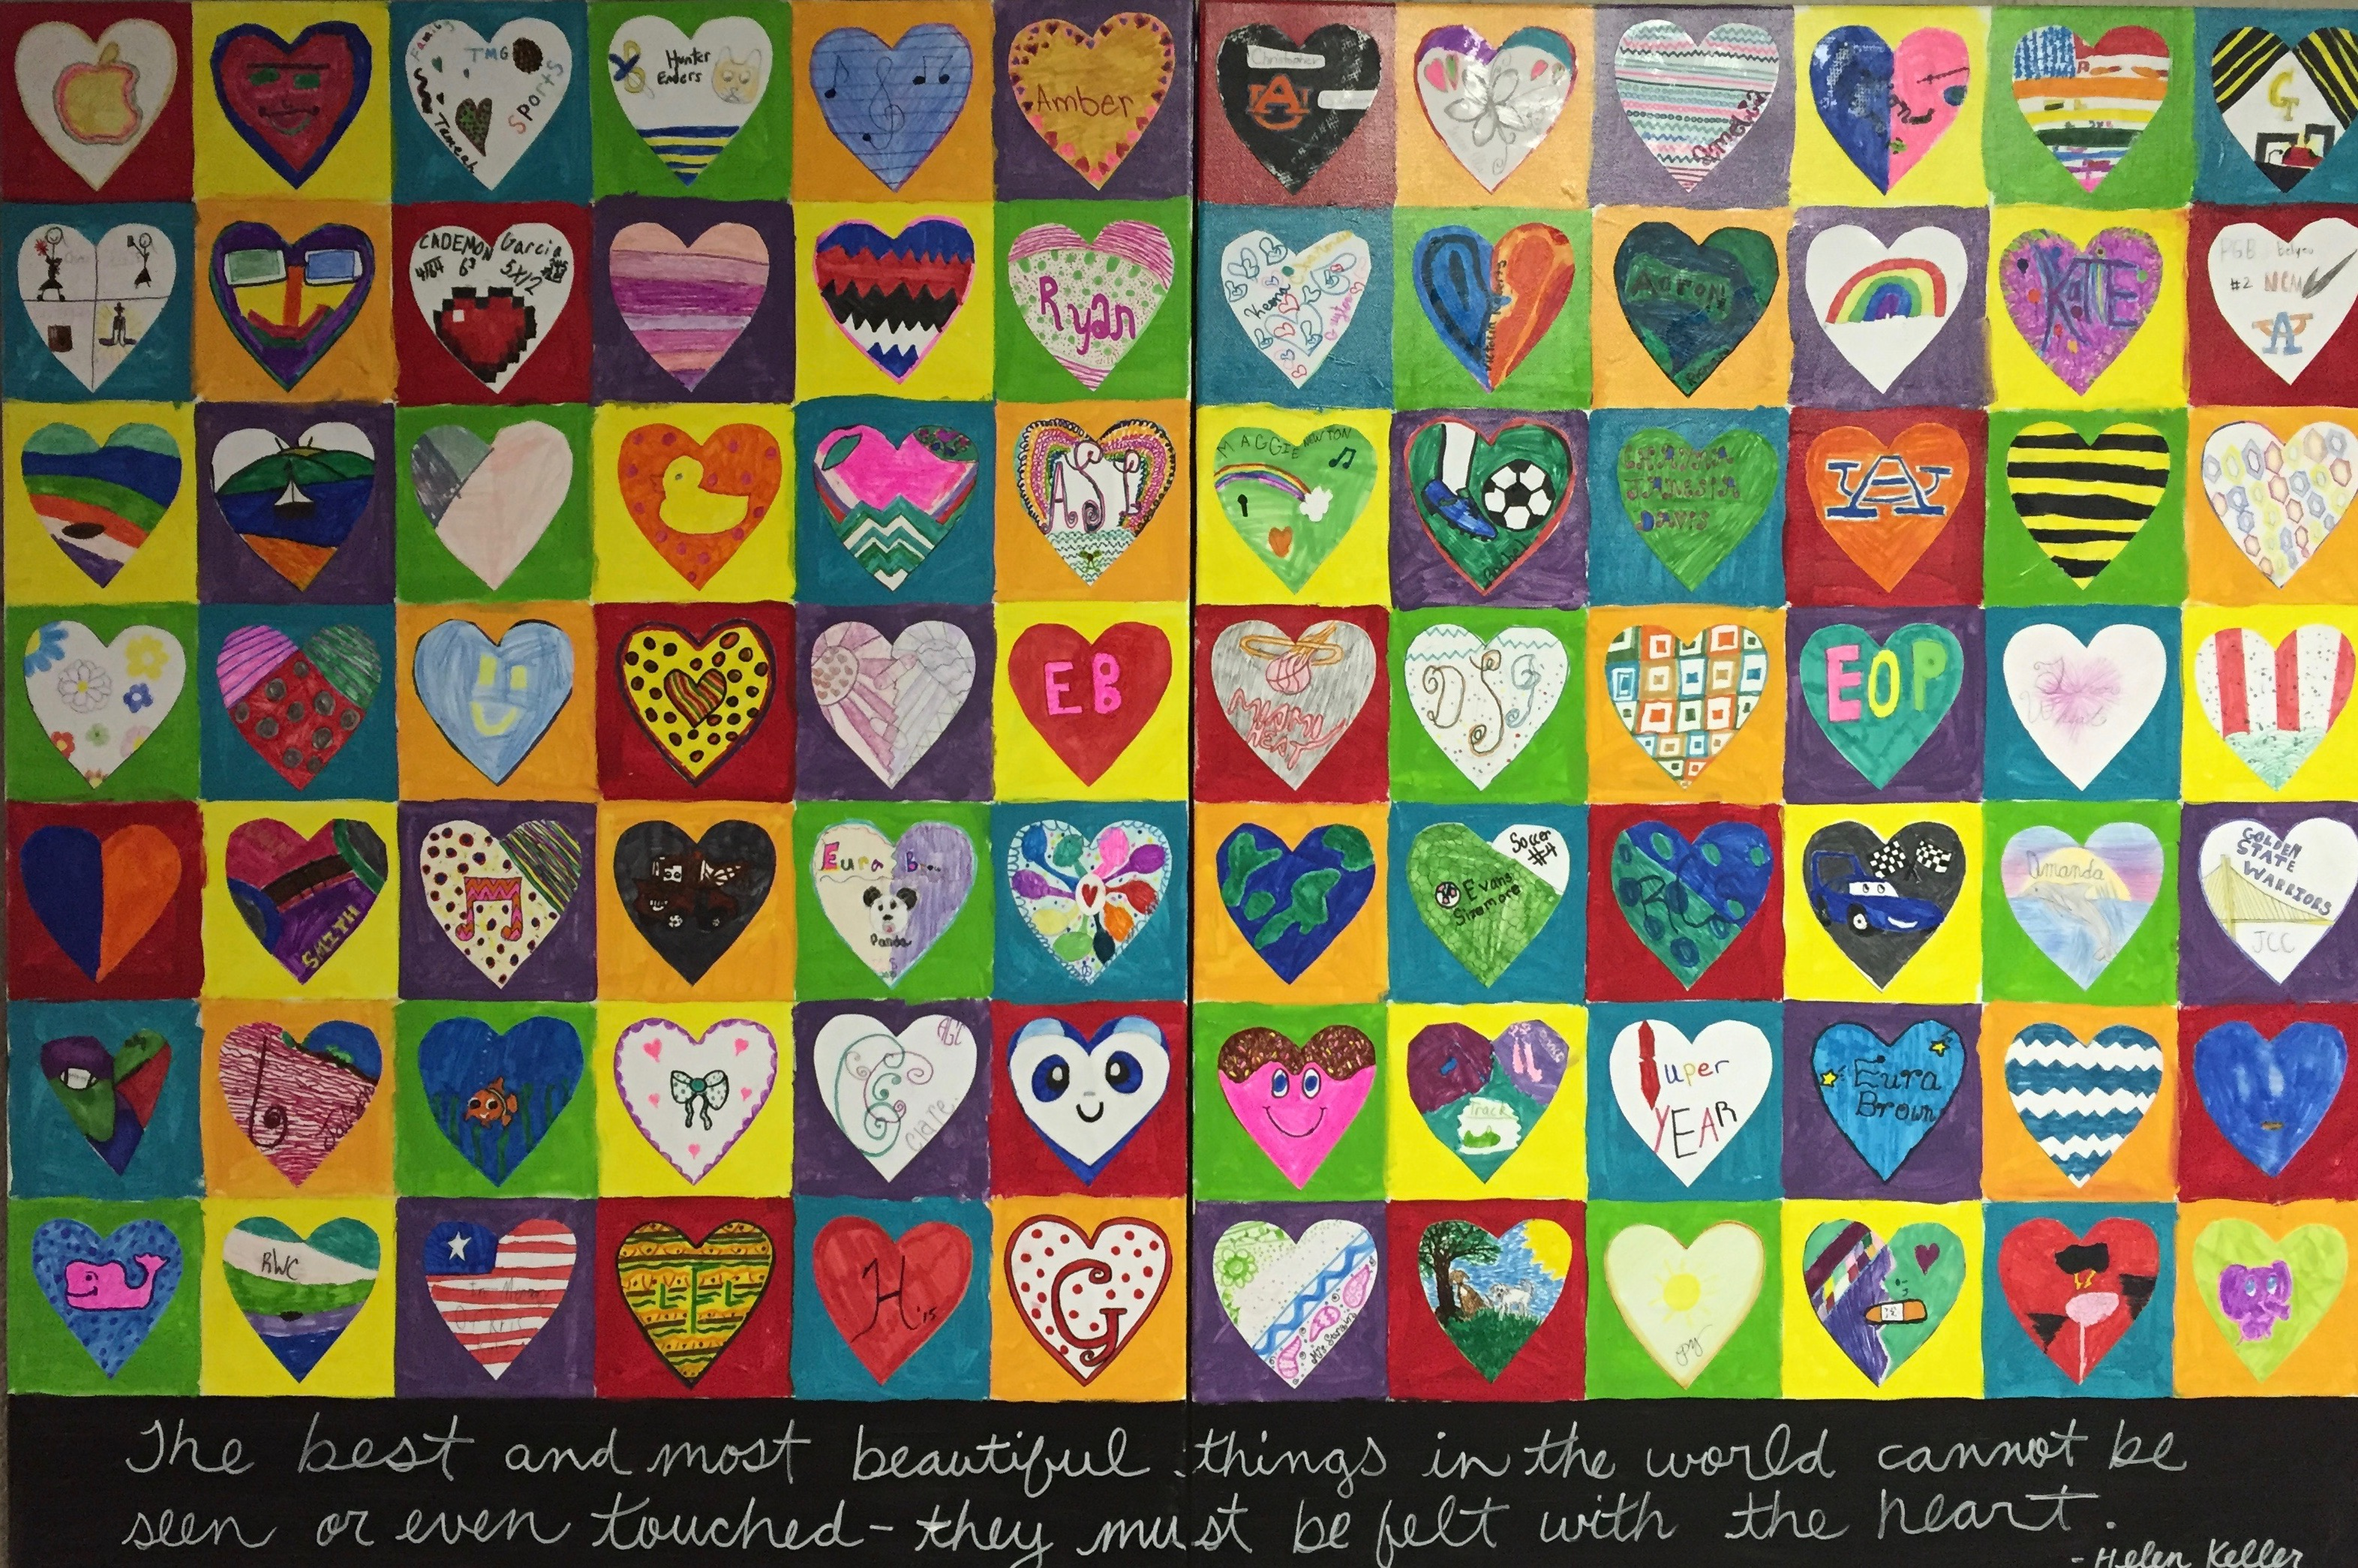 The best and most beautiful things in the world cannot be seen or even touched-they must be felt with the heart. Artwork made by students